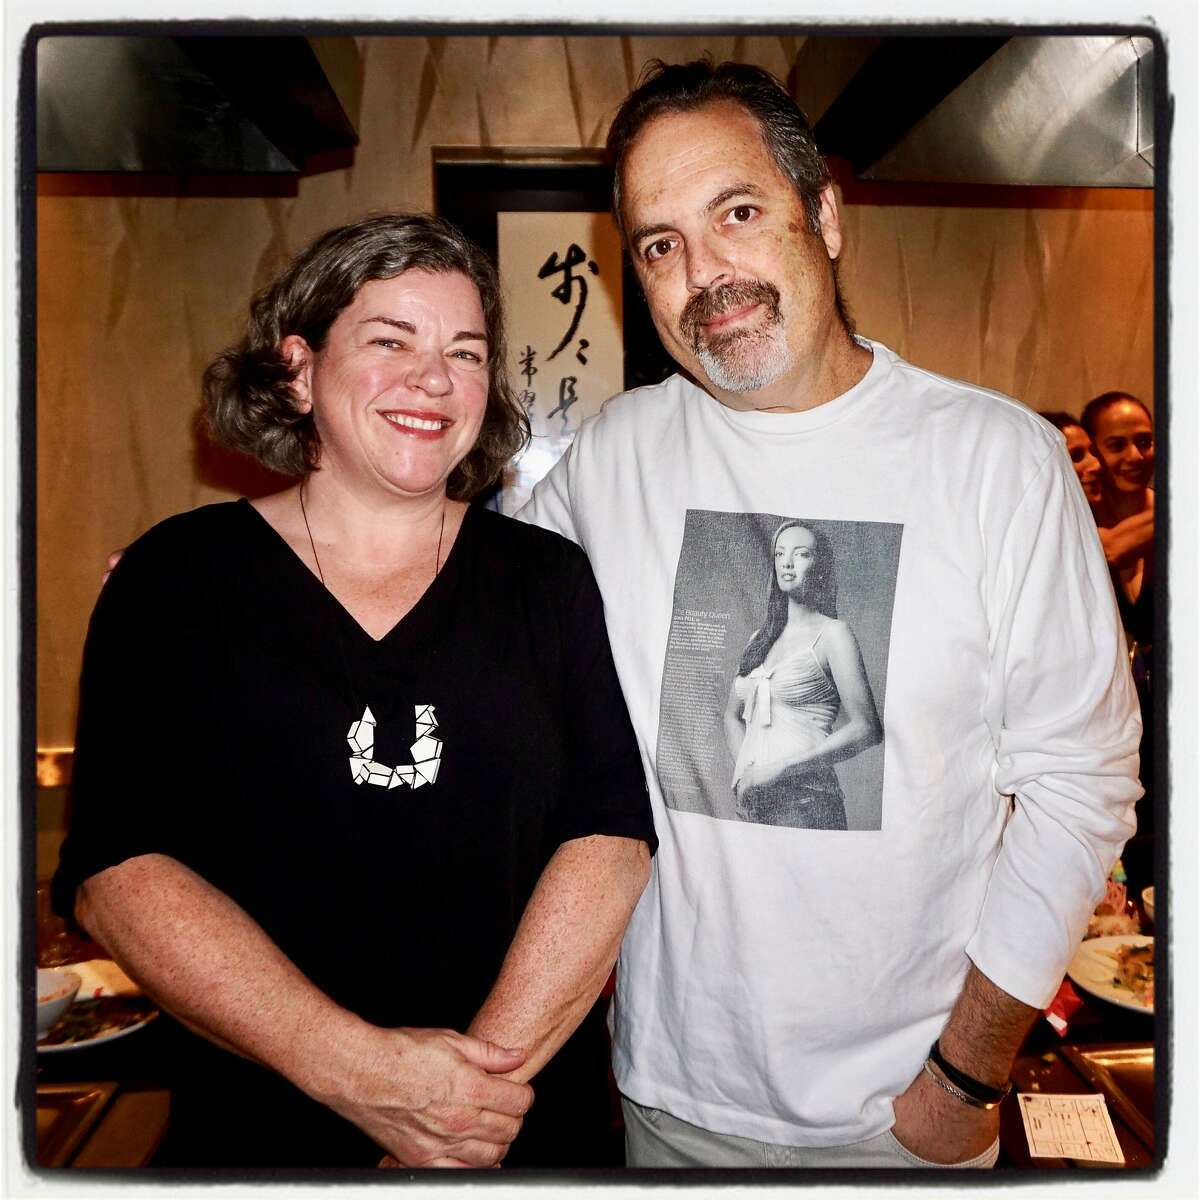 Artist Annie Galvin and Dave Pell at Benihana following their wildfire relief online fundraiser. Oct. 13, 2017.